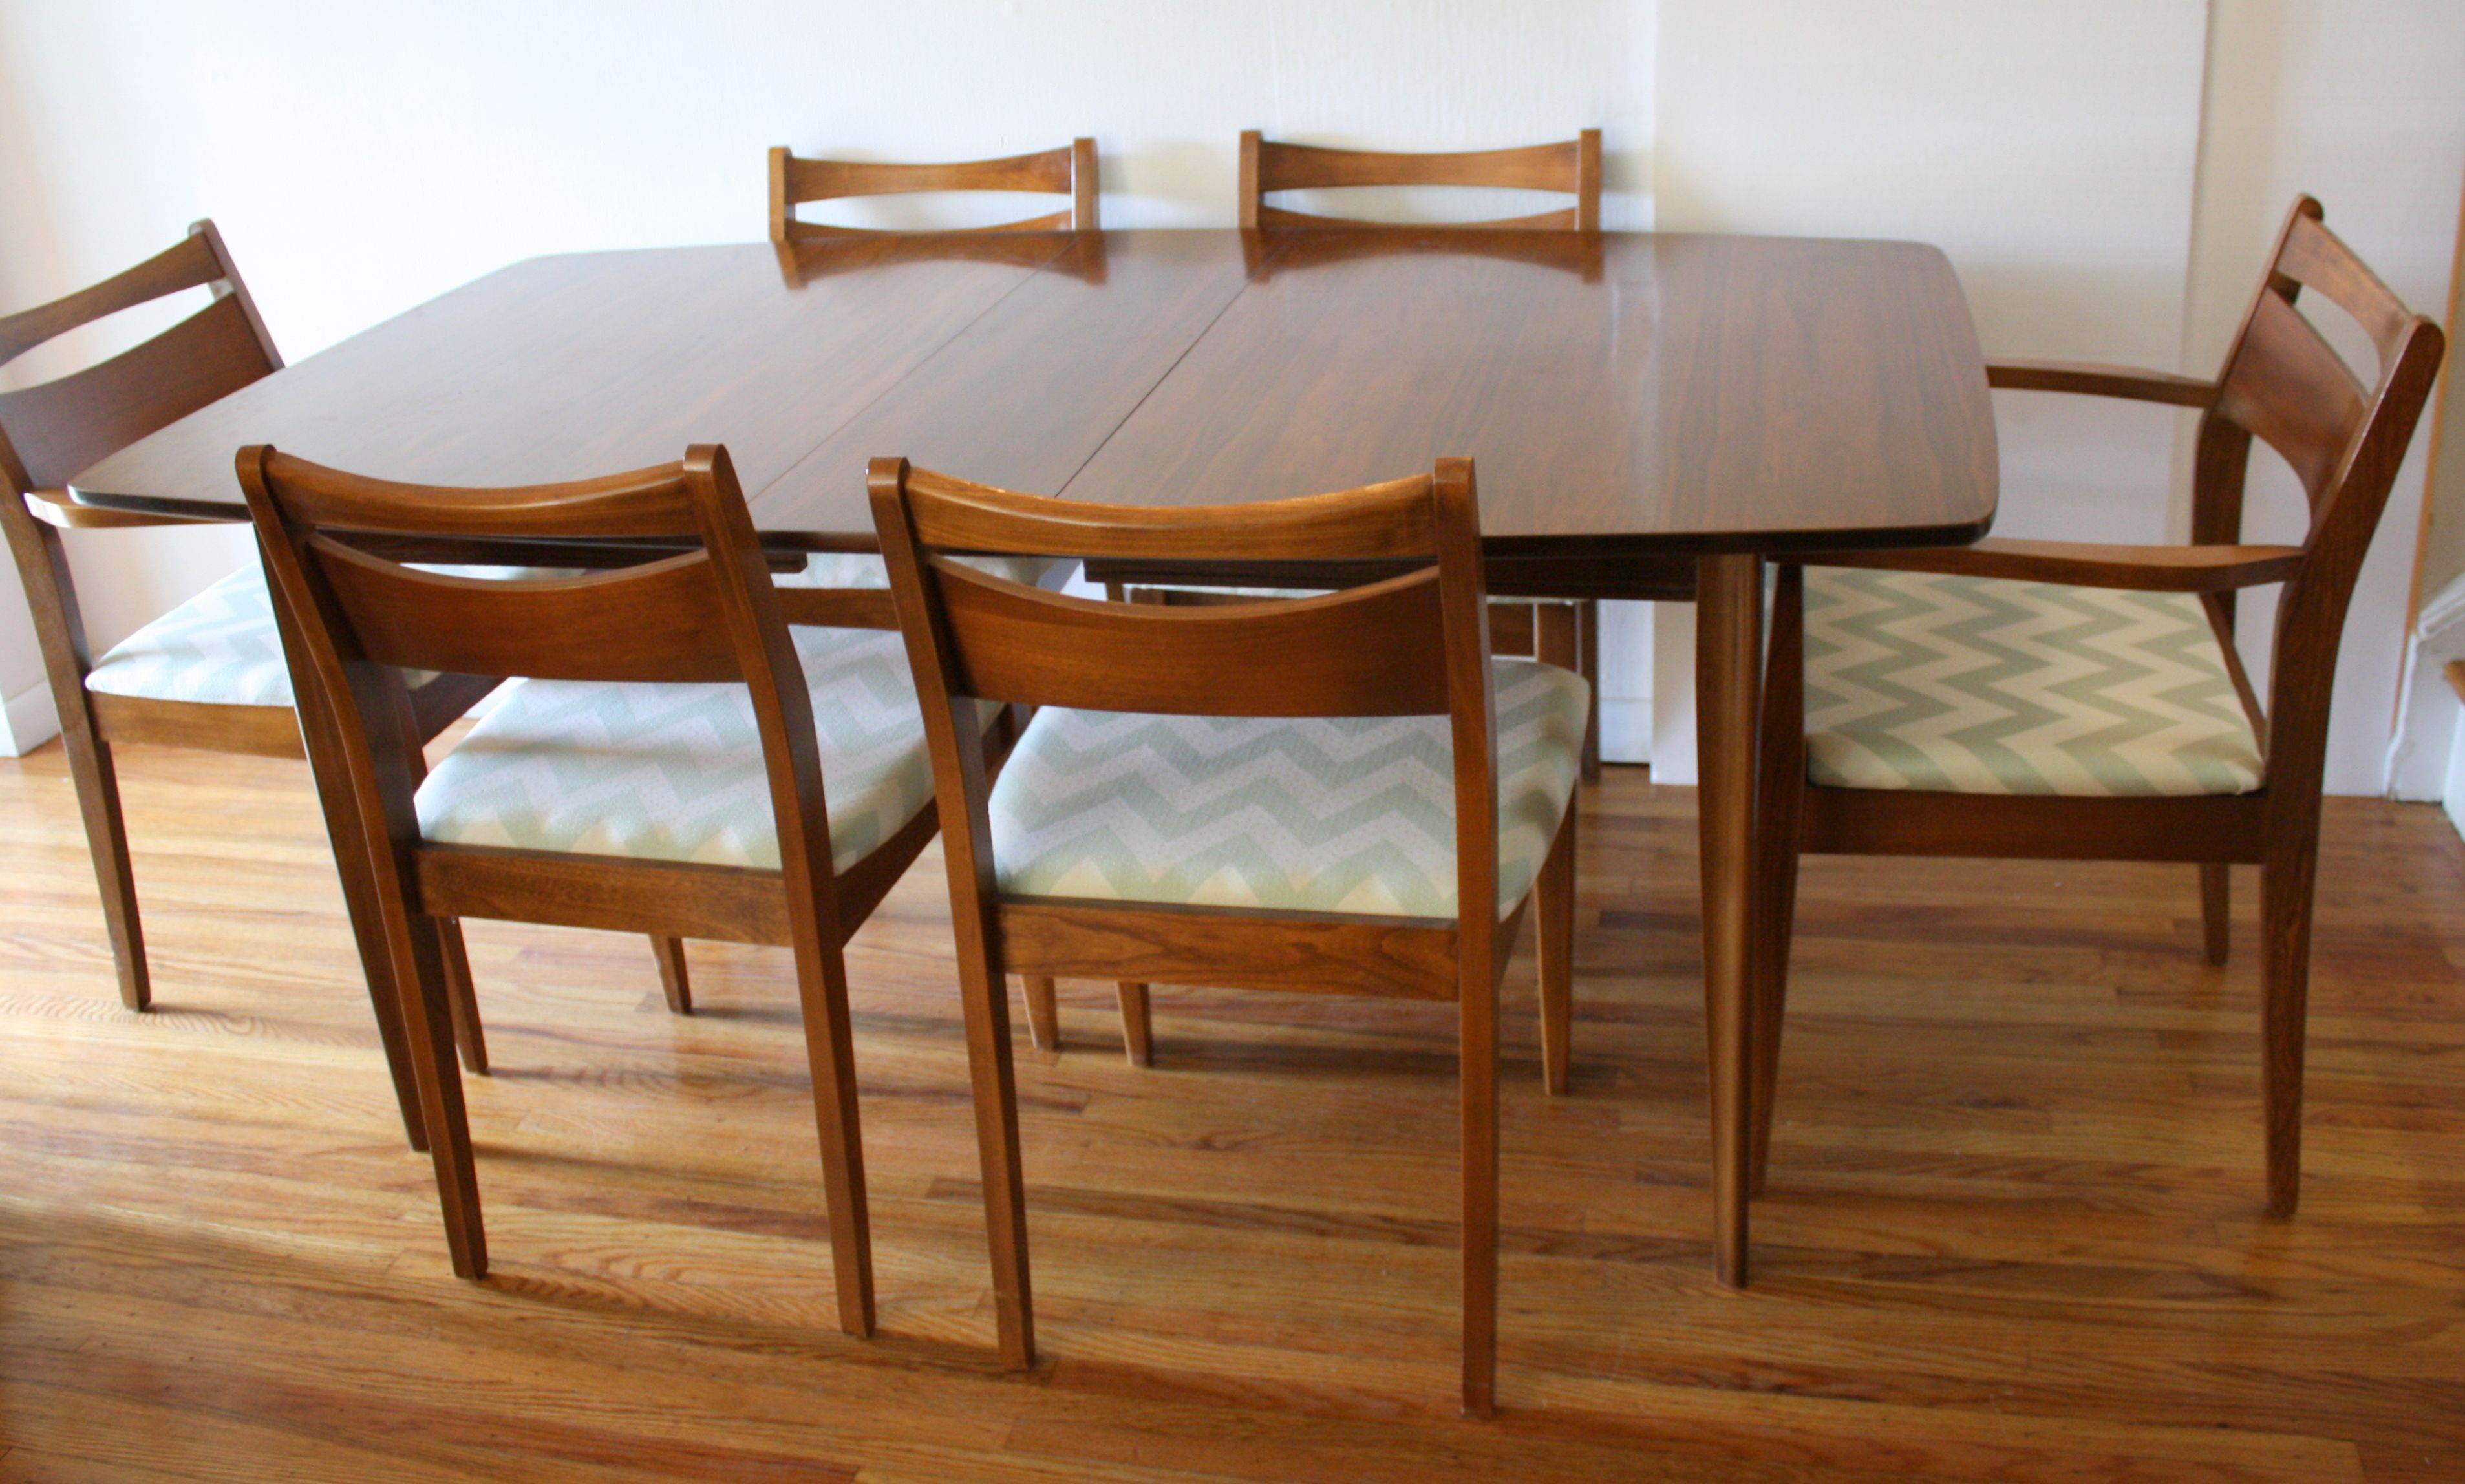 modern dining room chairs cheap | Mid century modern dining chair set of 6, upholstered in ...